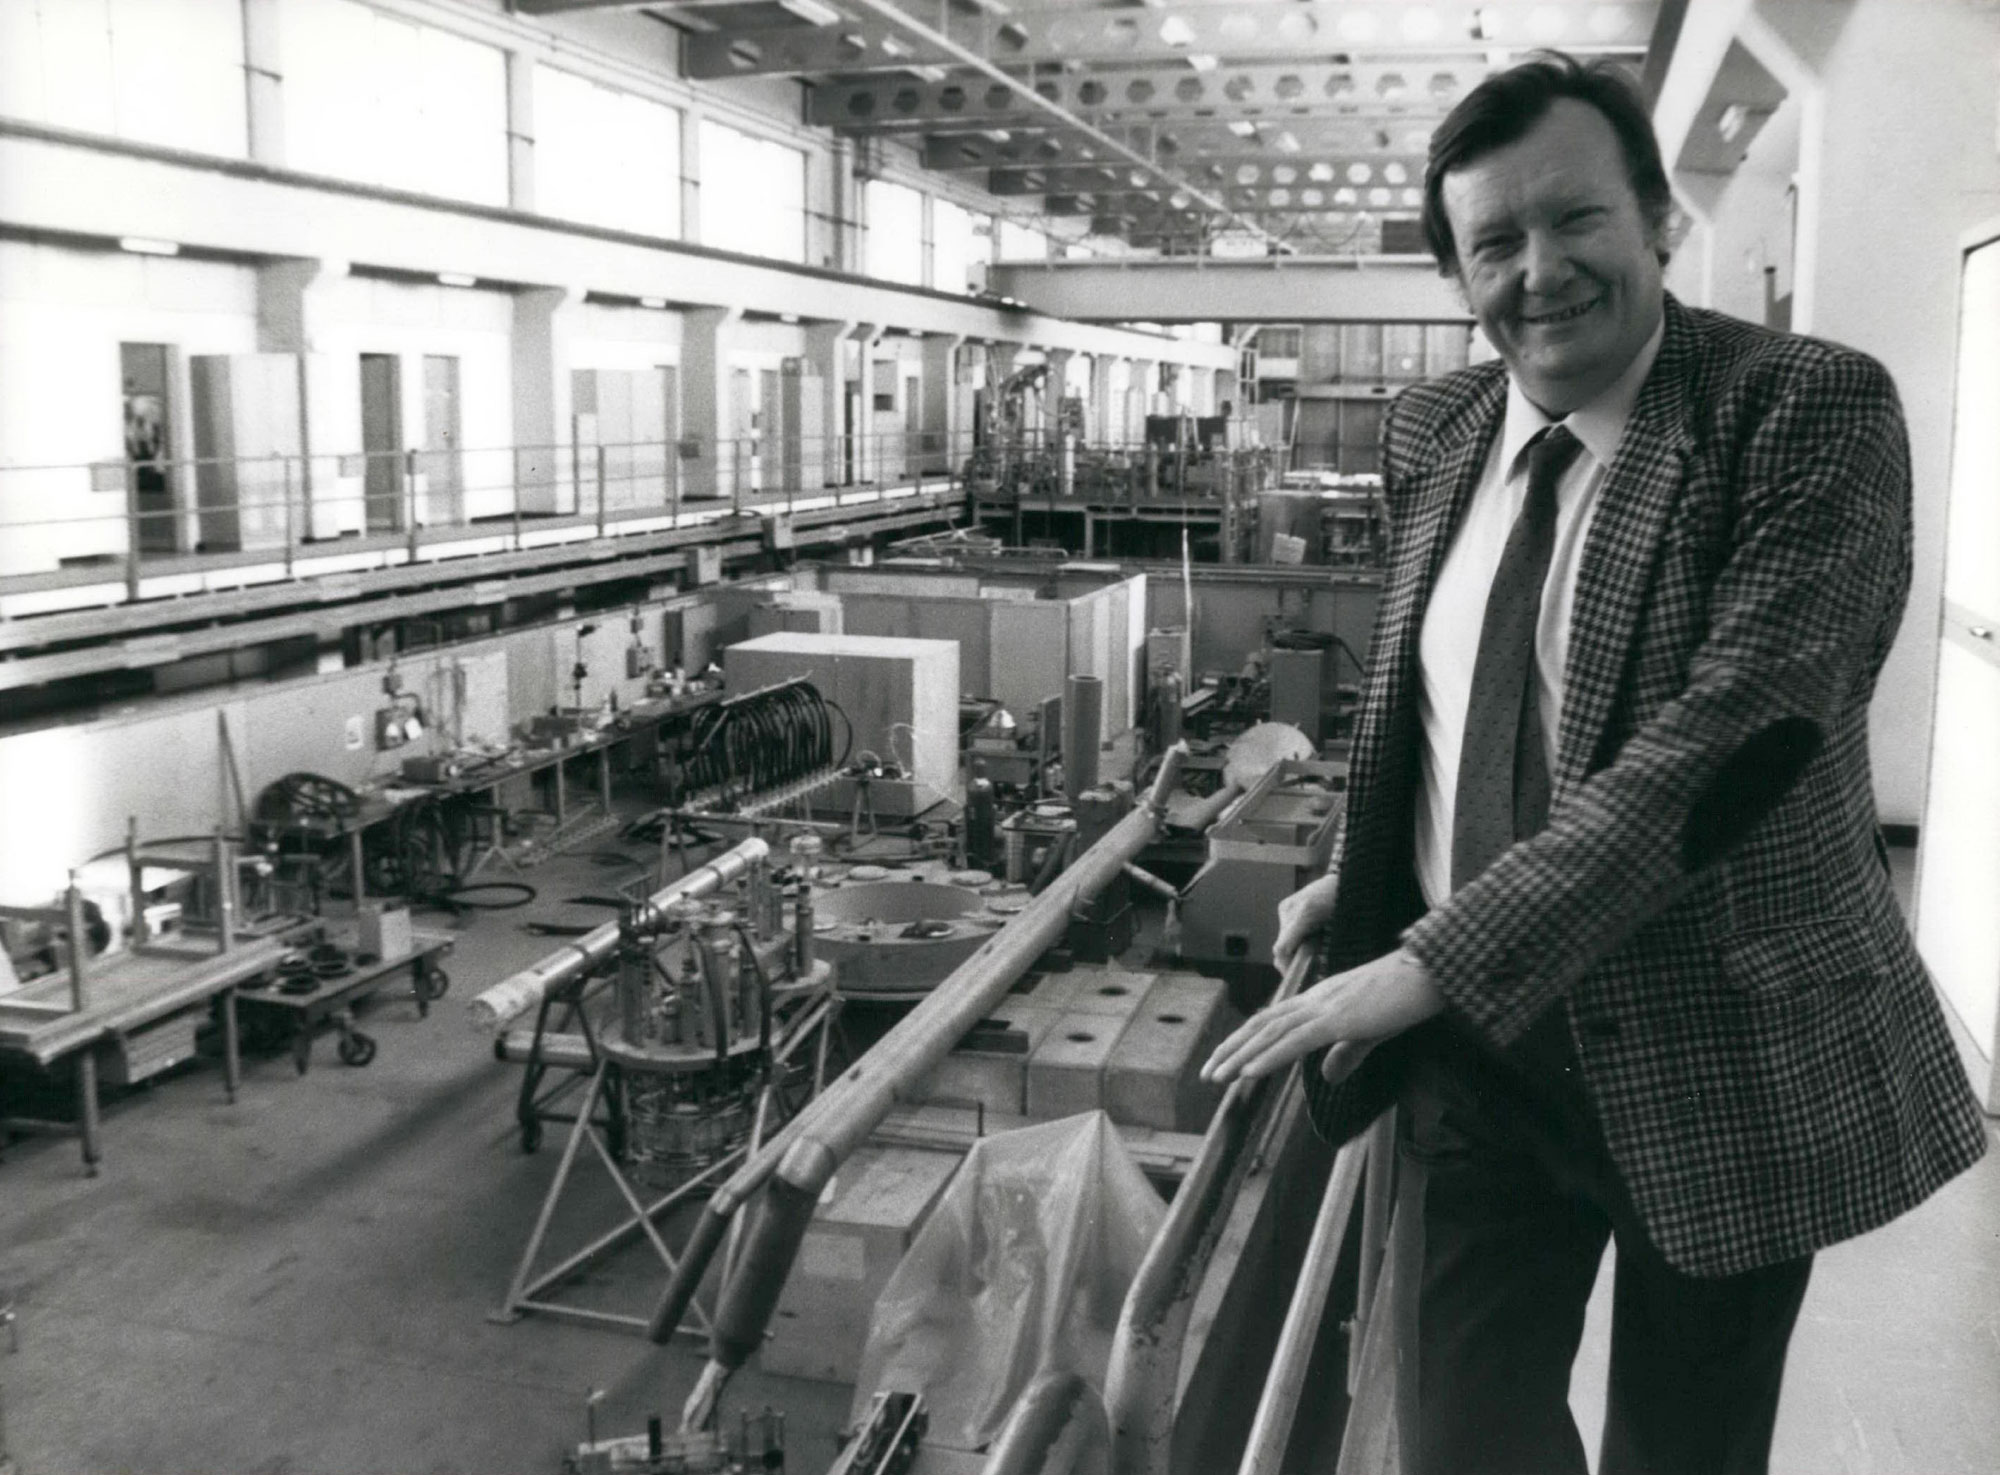 Black and white photo of a young Carlo Rubbia smiling in a suit and tie, standing on a walkway at CERN laboratory in 1984 with equipment behind him.